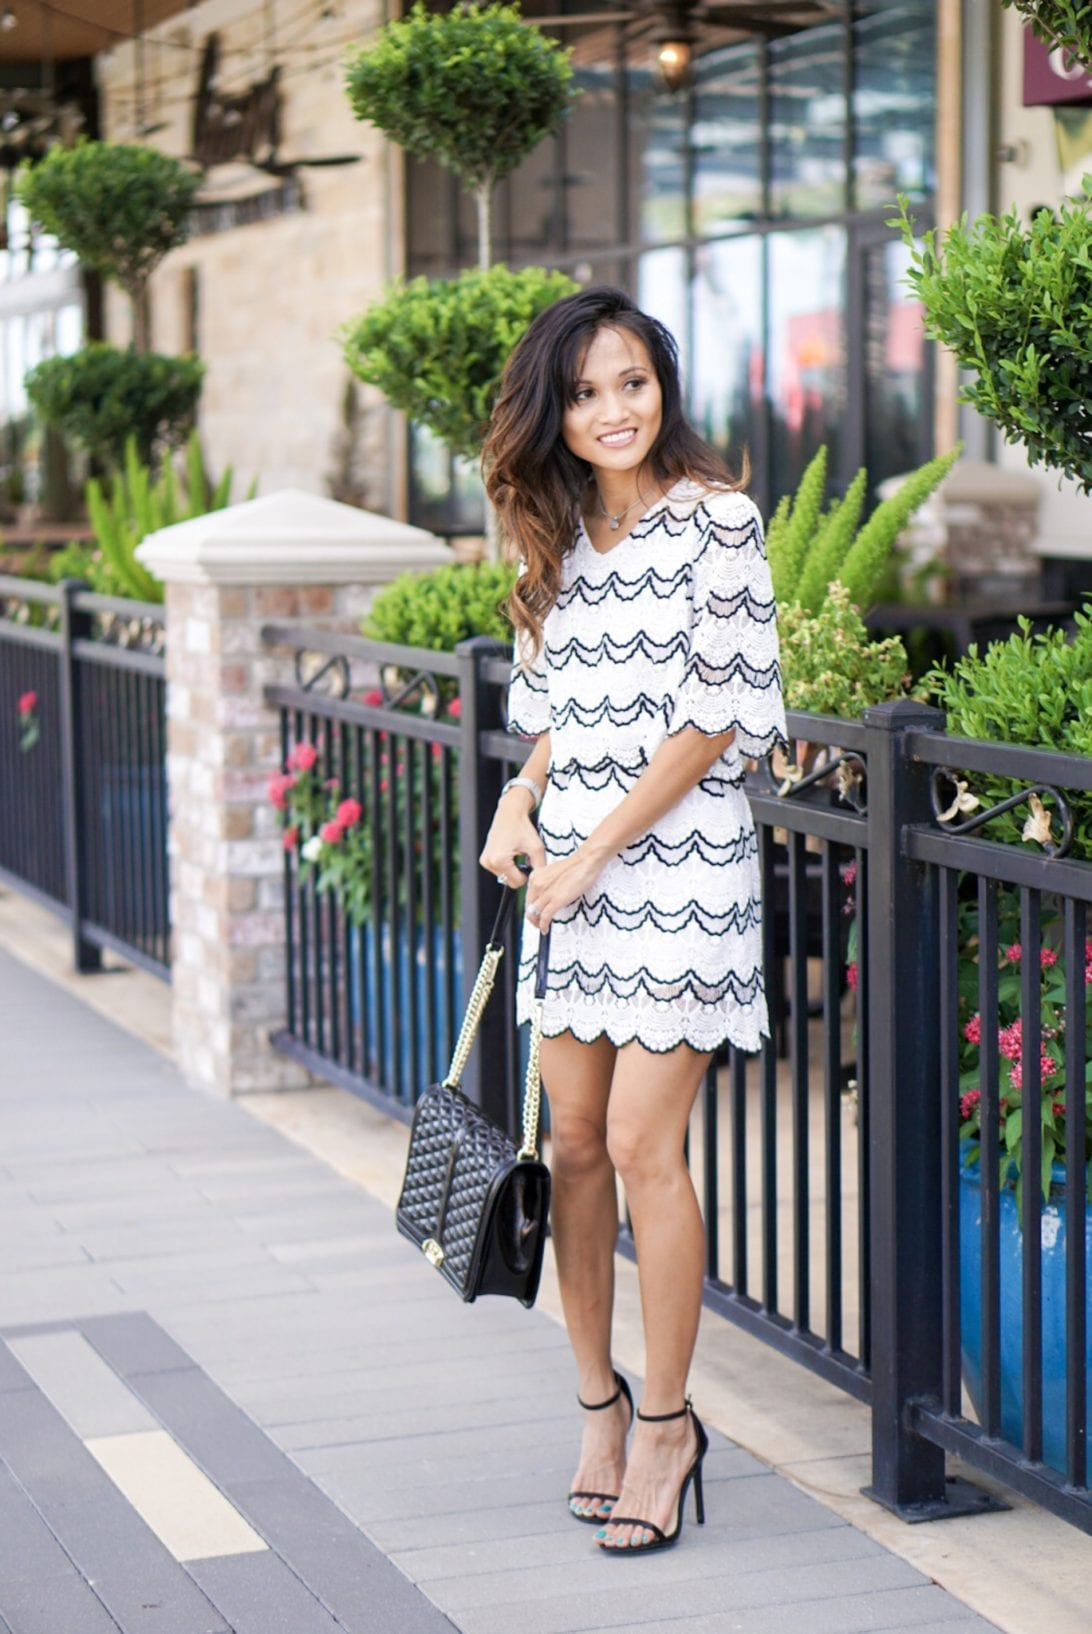 scallop skirt, scallop top, two piece skirt set, chicwish, date night look, Rebecca minkoff bag, what to wear to a wedding